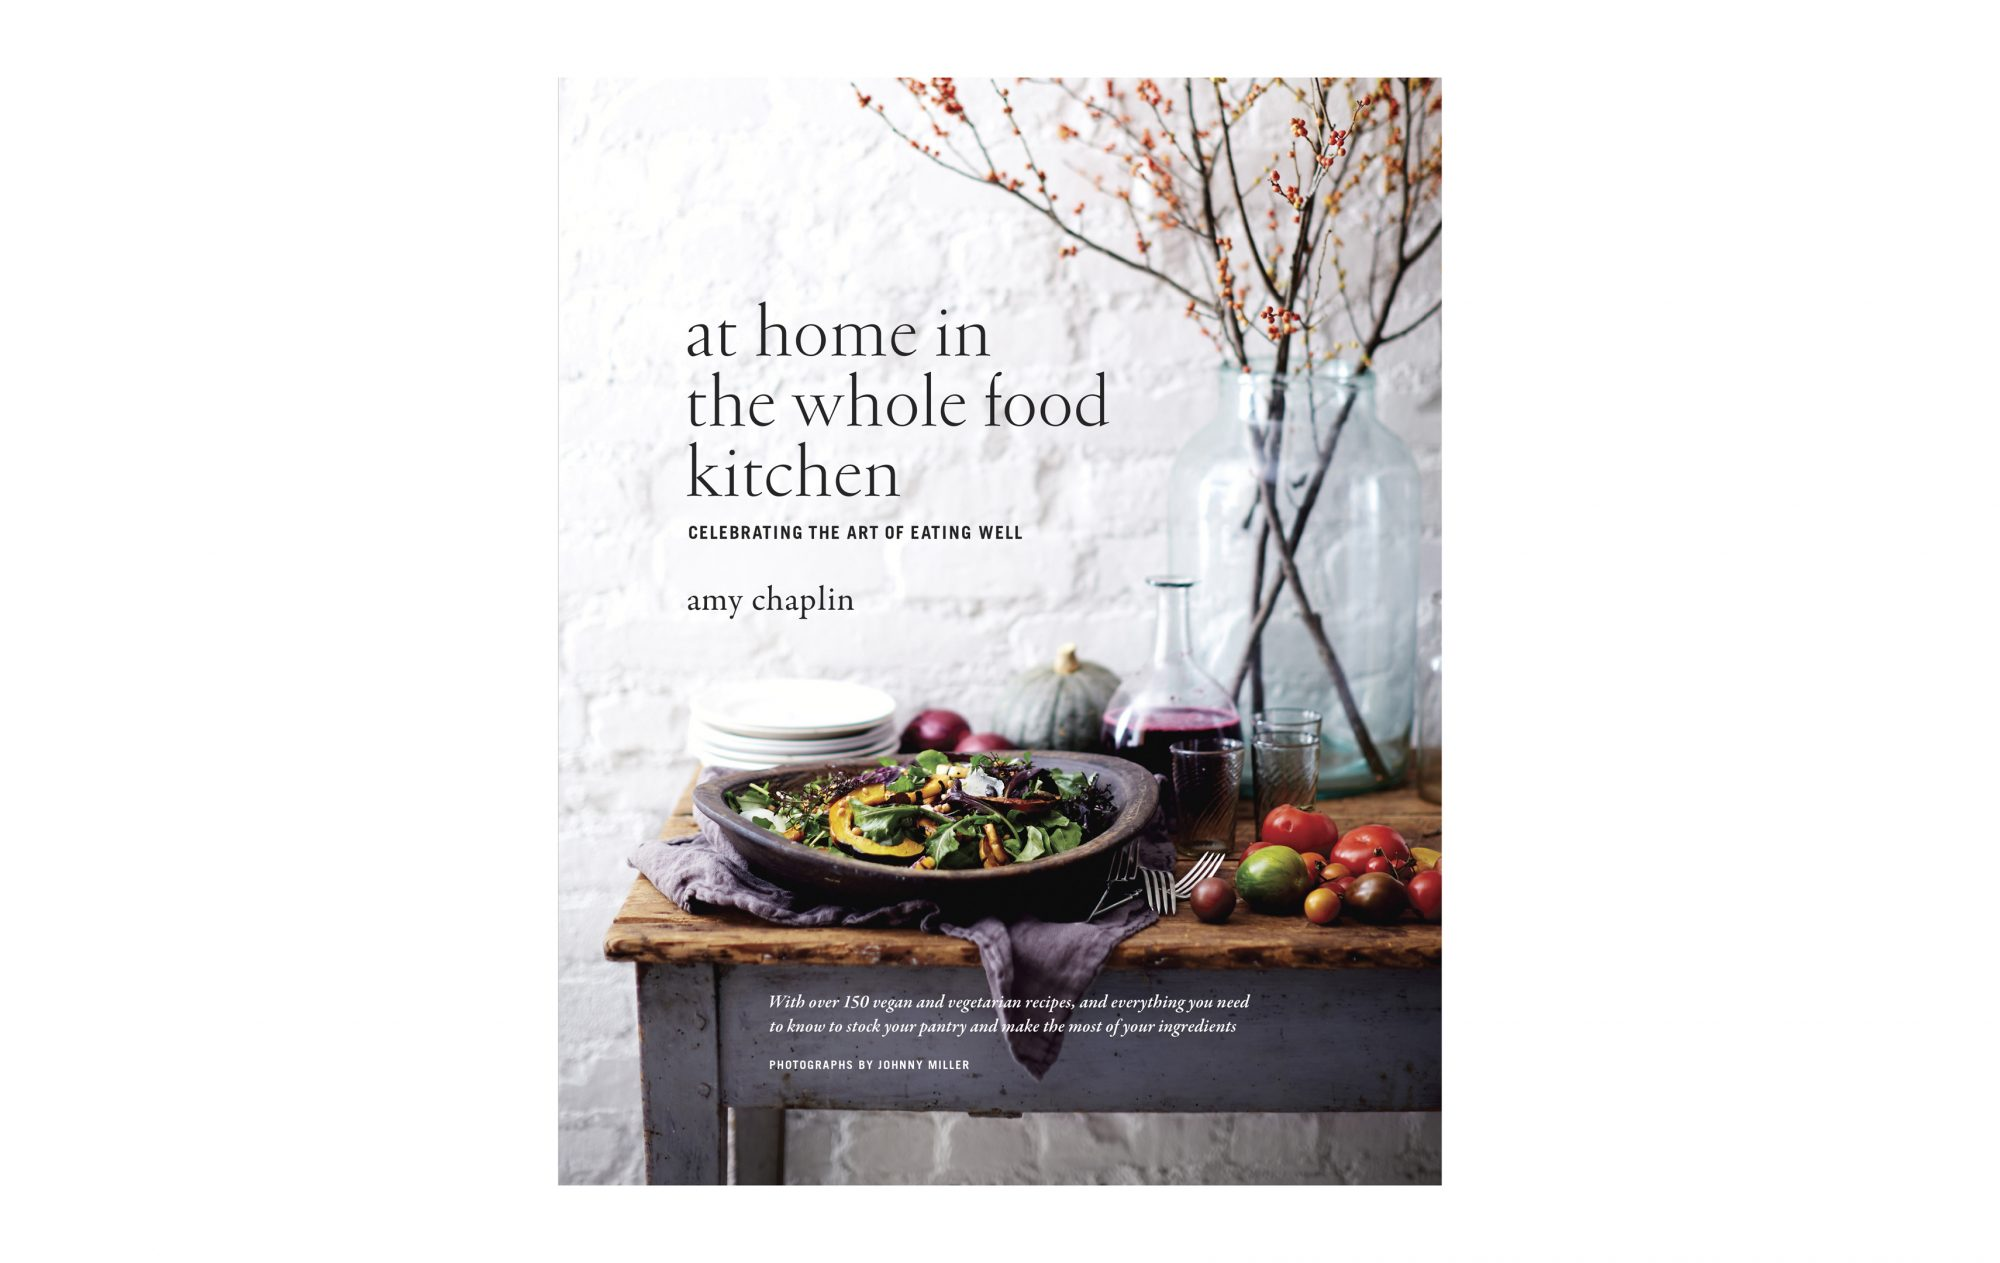 At Home in the Whole Food Kitchen: Celebrating the Art of Eating Well, by Amy Chaplin